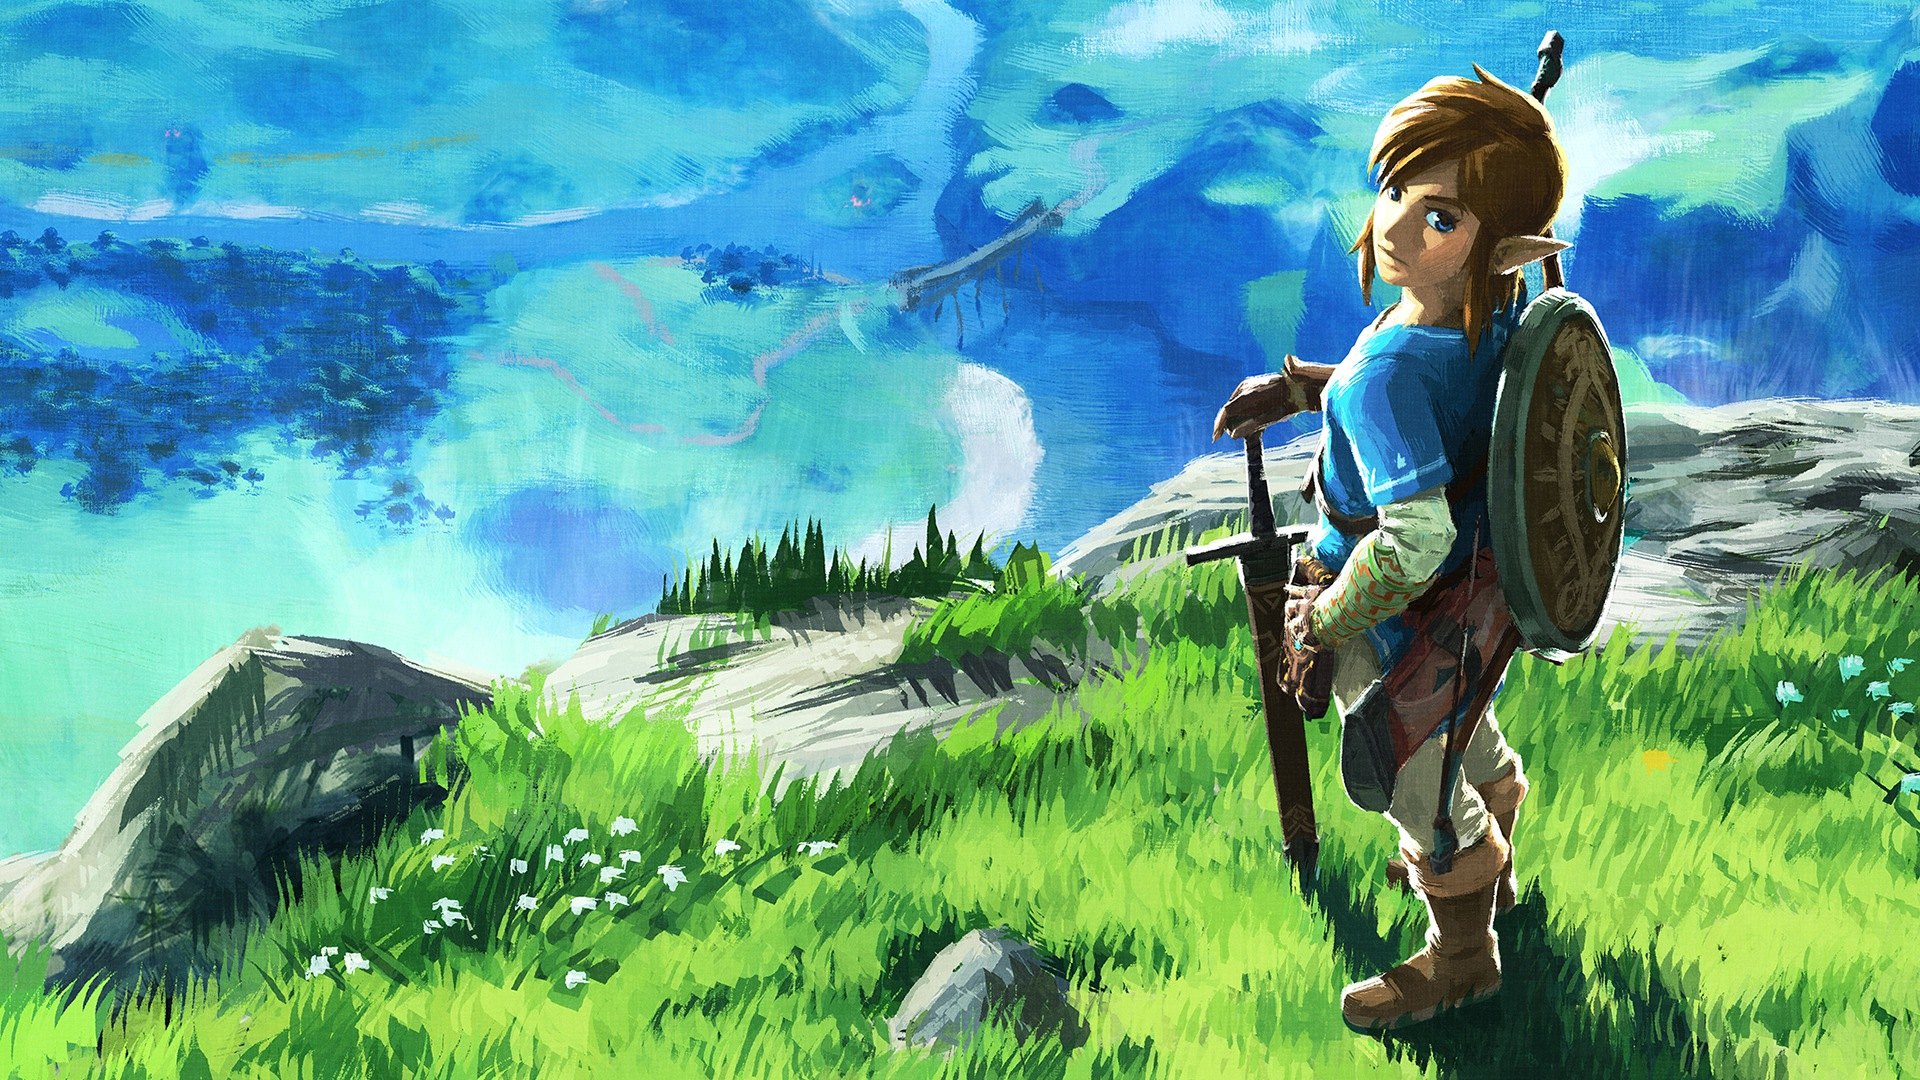 Zelda Breath Of The Wild Wallpaper High Resolution Desktop Quality